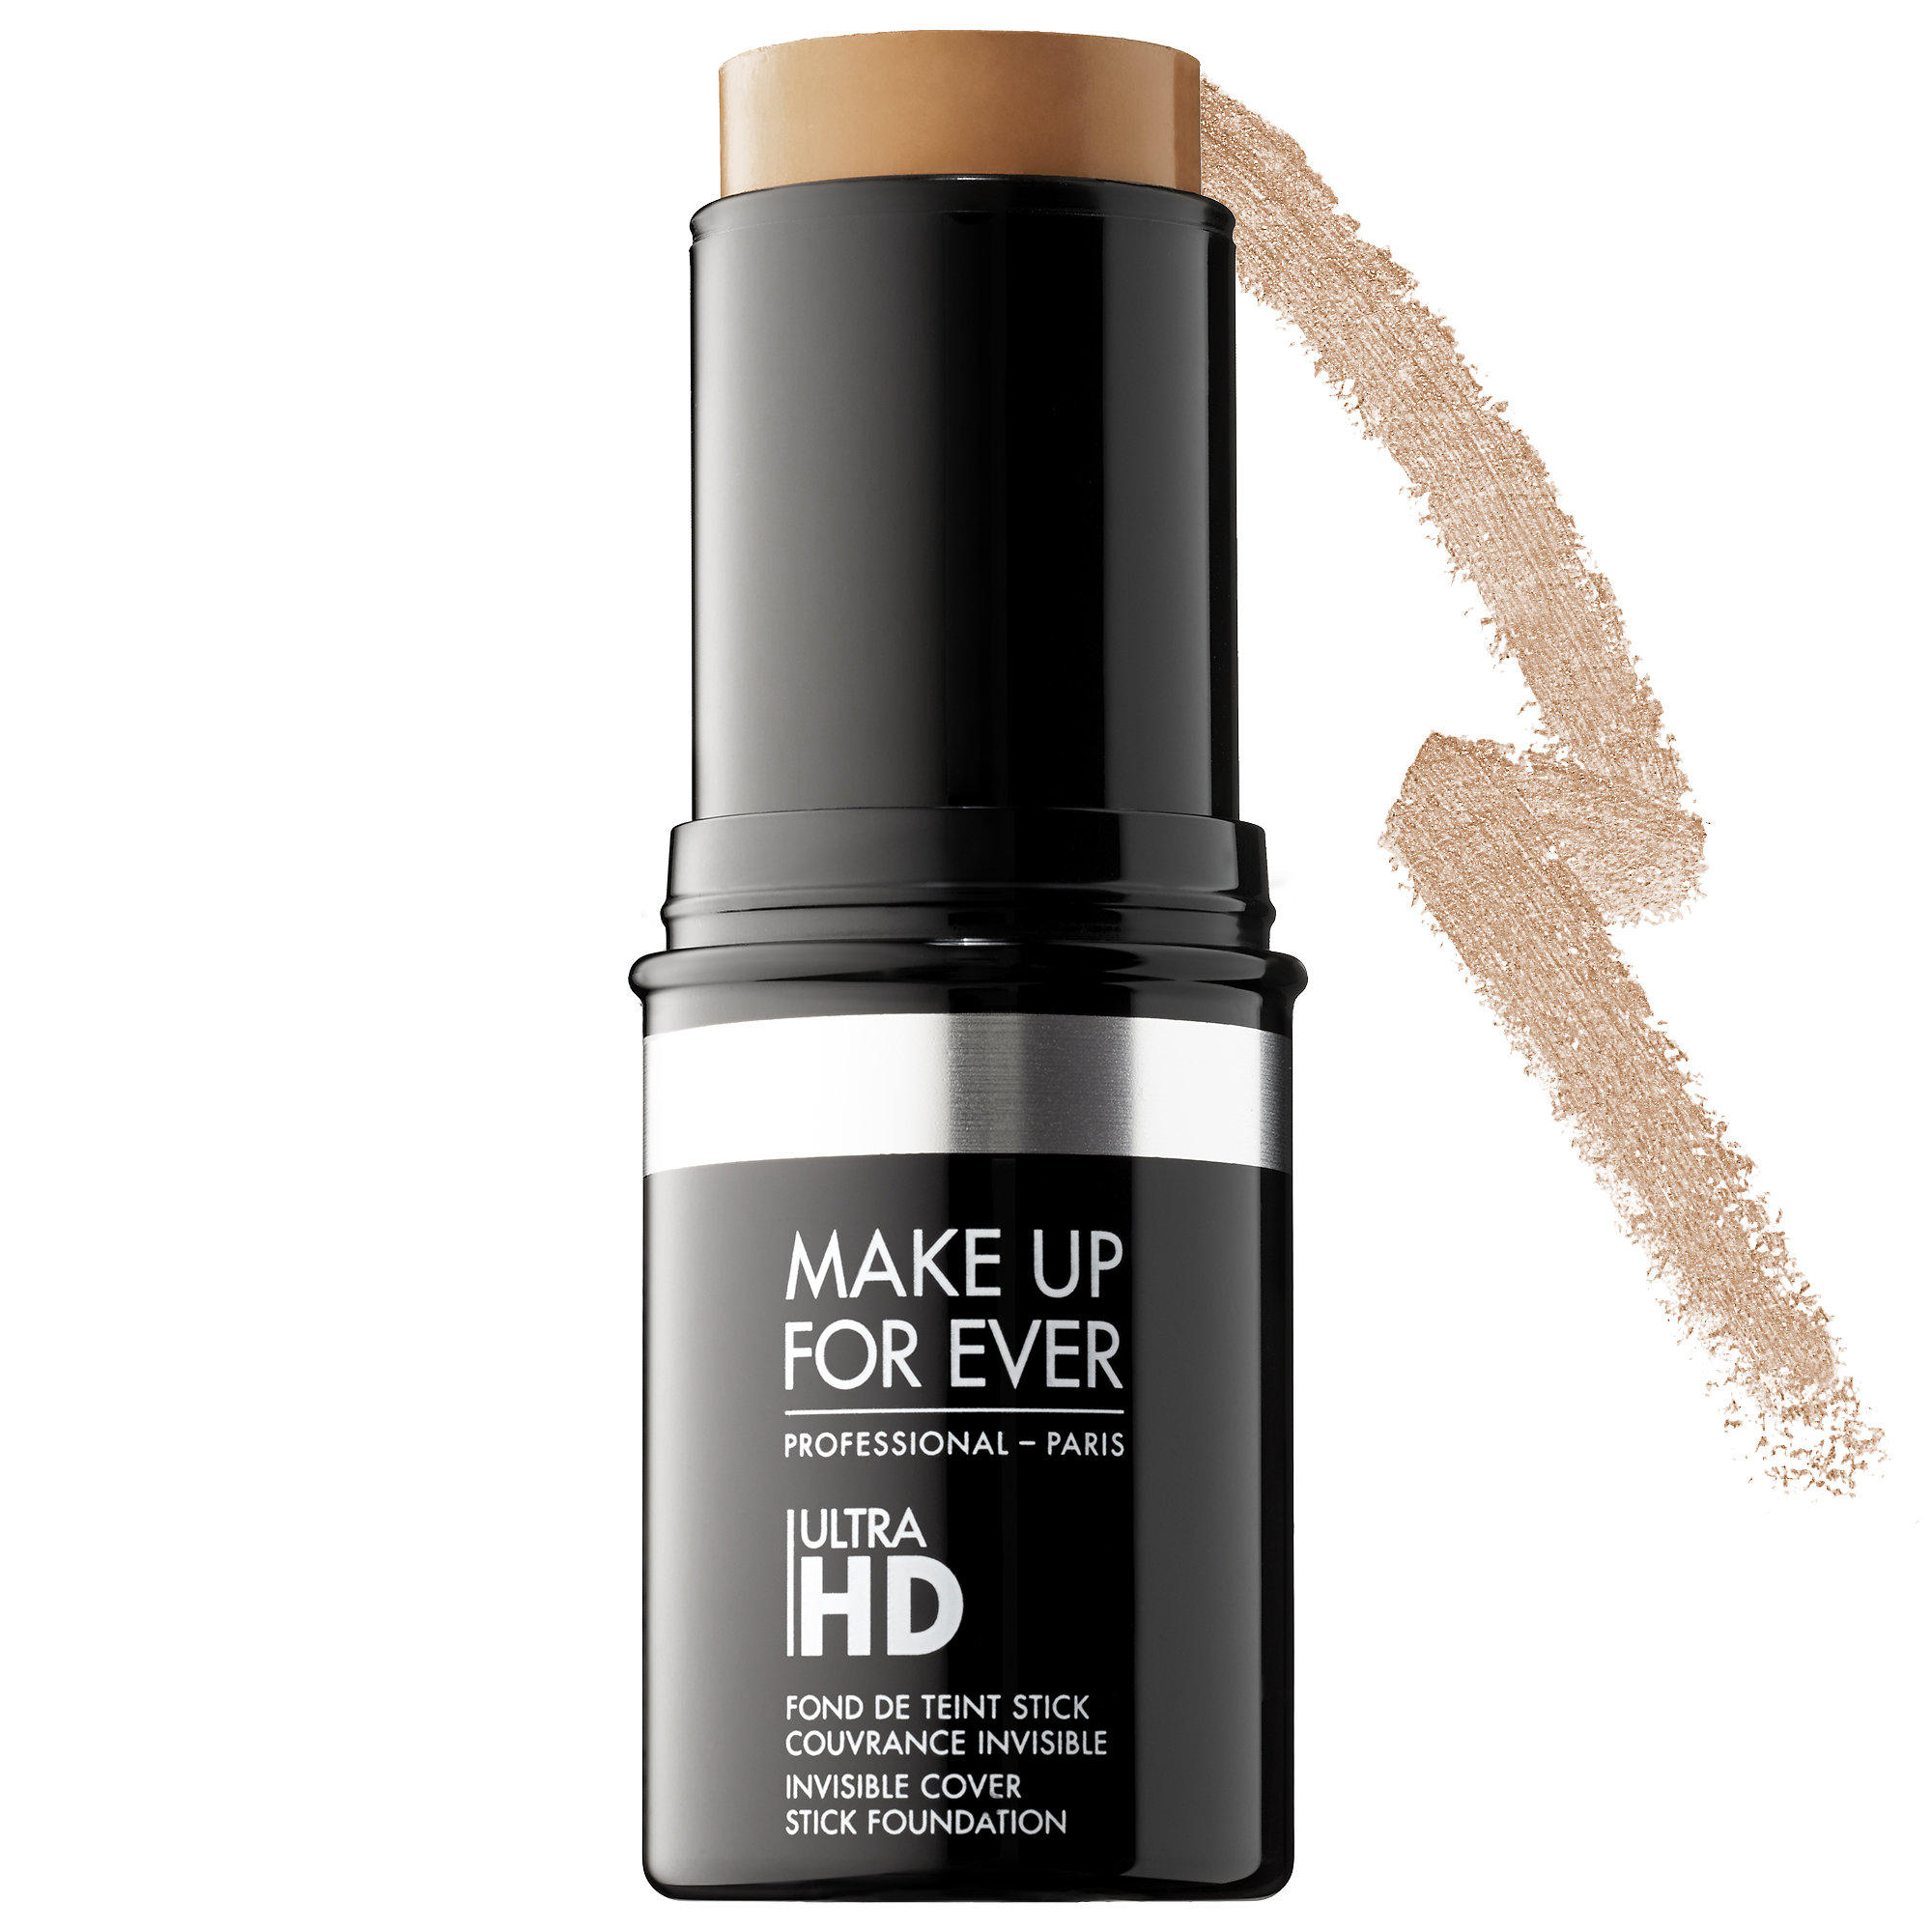 New Release Makeup forever launched New Ultra HD Invisible Cover Stick Foundation